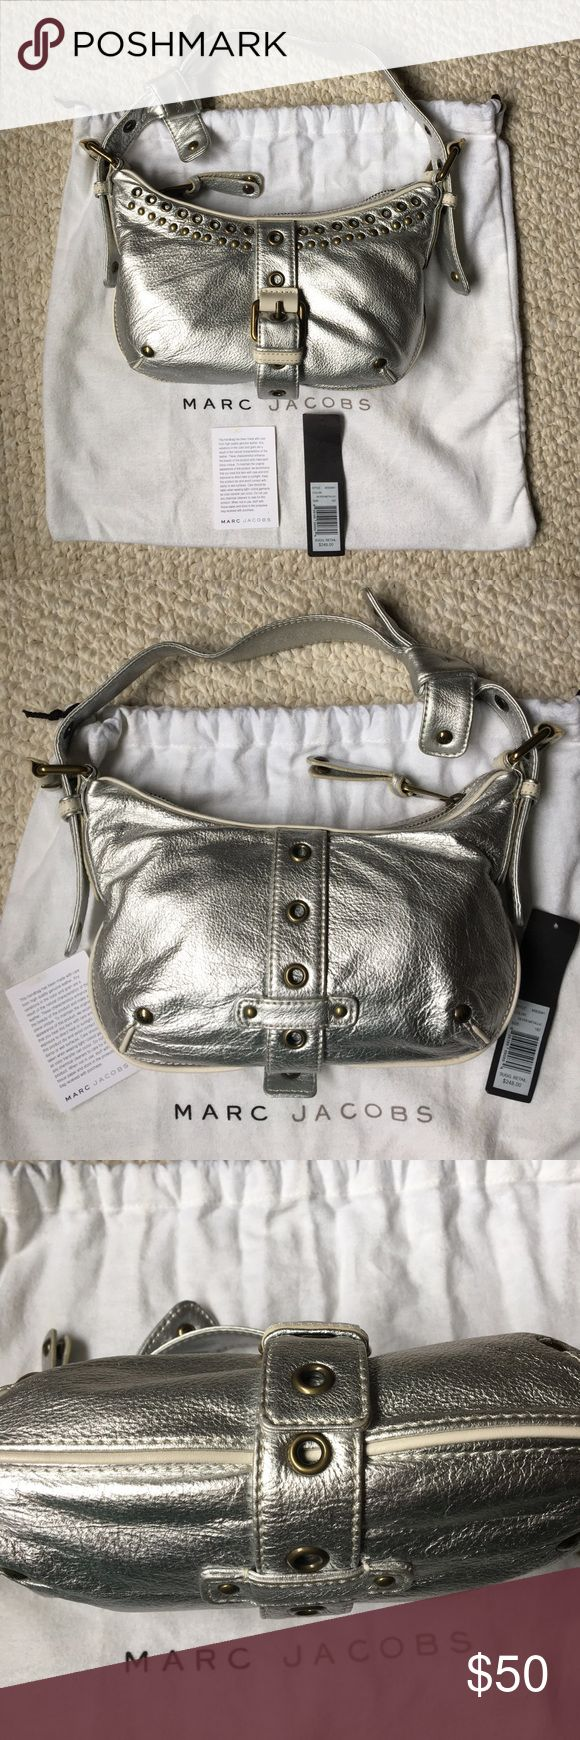 """Marc Jacobs Metallic Silver Shoulder Bag Marc Jacobs small metallic silver shoulder bag with brass hardware. Comes with original price tag, care card, tissue stuffing and dust bag. Style #M353041.  Measurements:  11"""" W x 5.5"""" H x 2.5"""" D. Strap:  19"""" L, 9"""" drop. Zip closure.  Printed lining with 1 slip pocket.  Hardly used and in very good condition. Marc Jacobs Bags Shoulder Bags"""